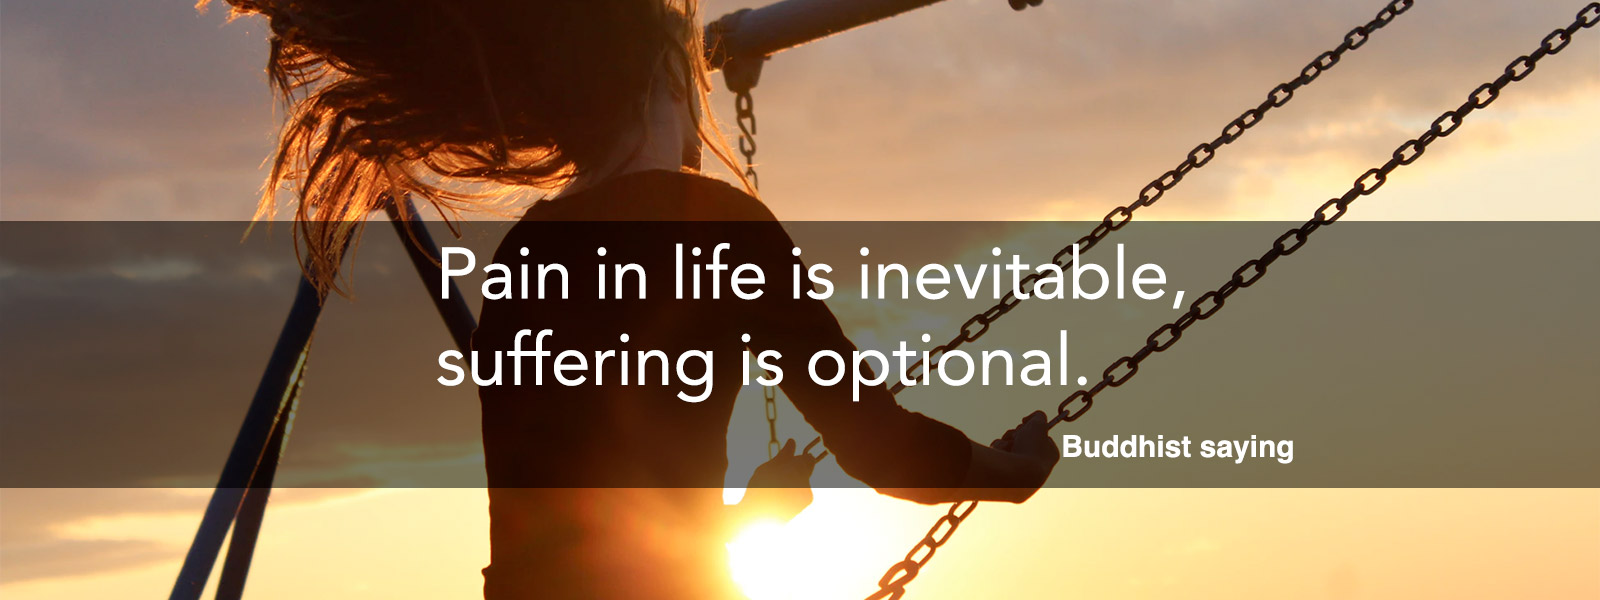 Pain in life is inevitable, suffering is optional.